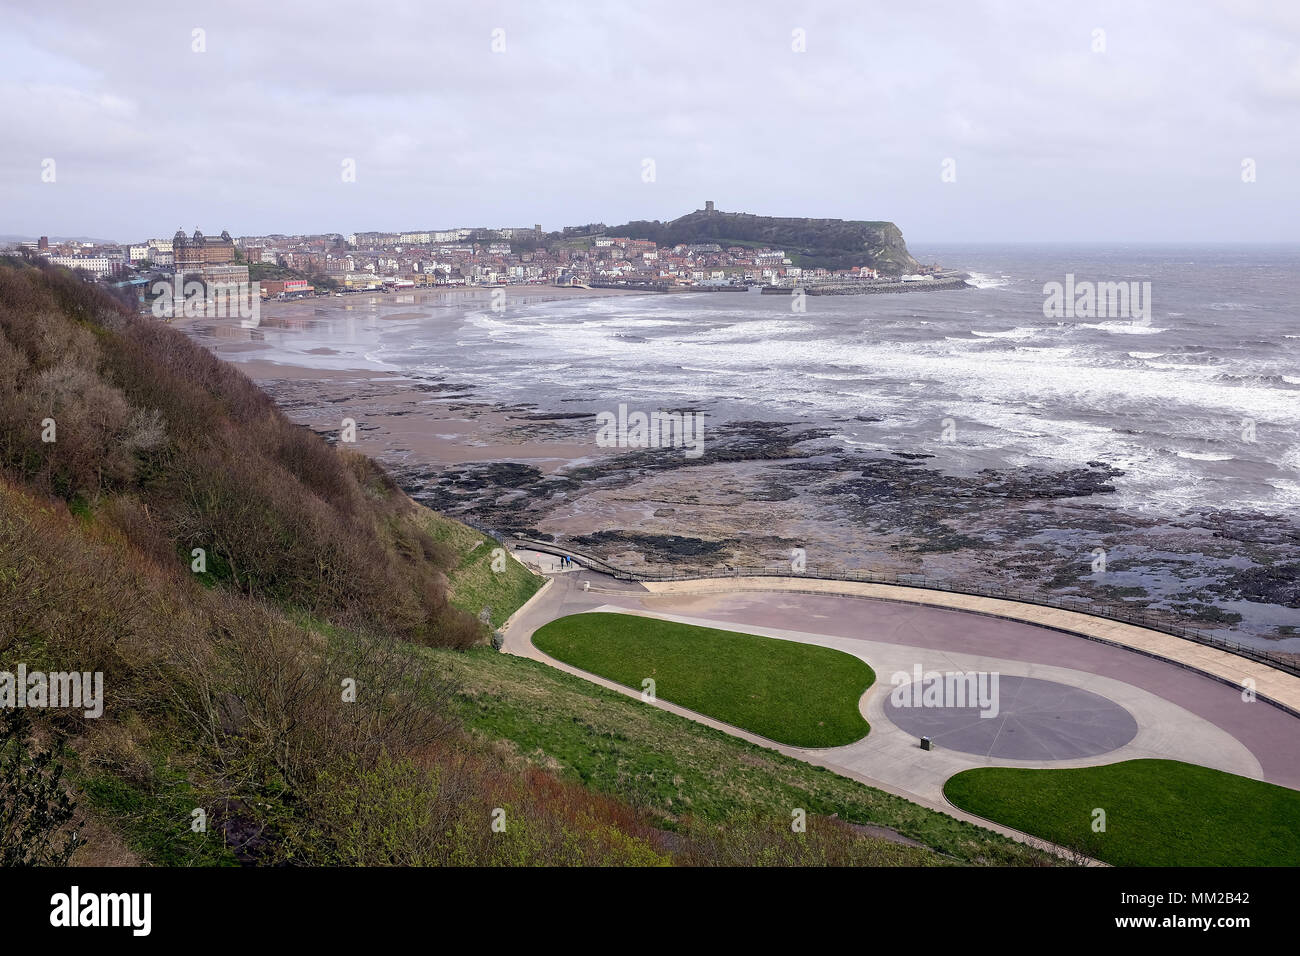 Scarborough yorkshire uk april 30 2018 scarborough - Swimming pools in south yorkshire ...